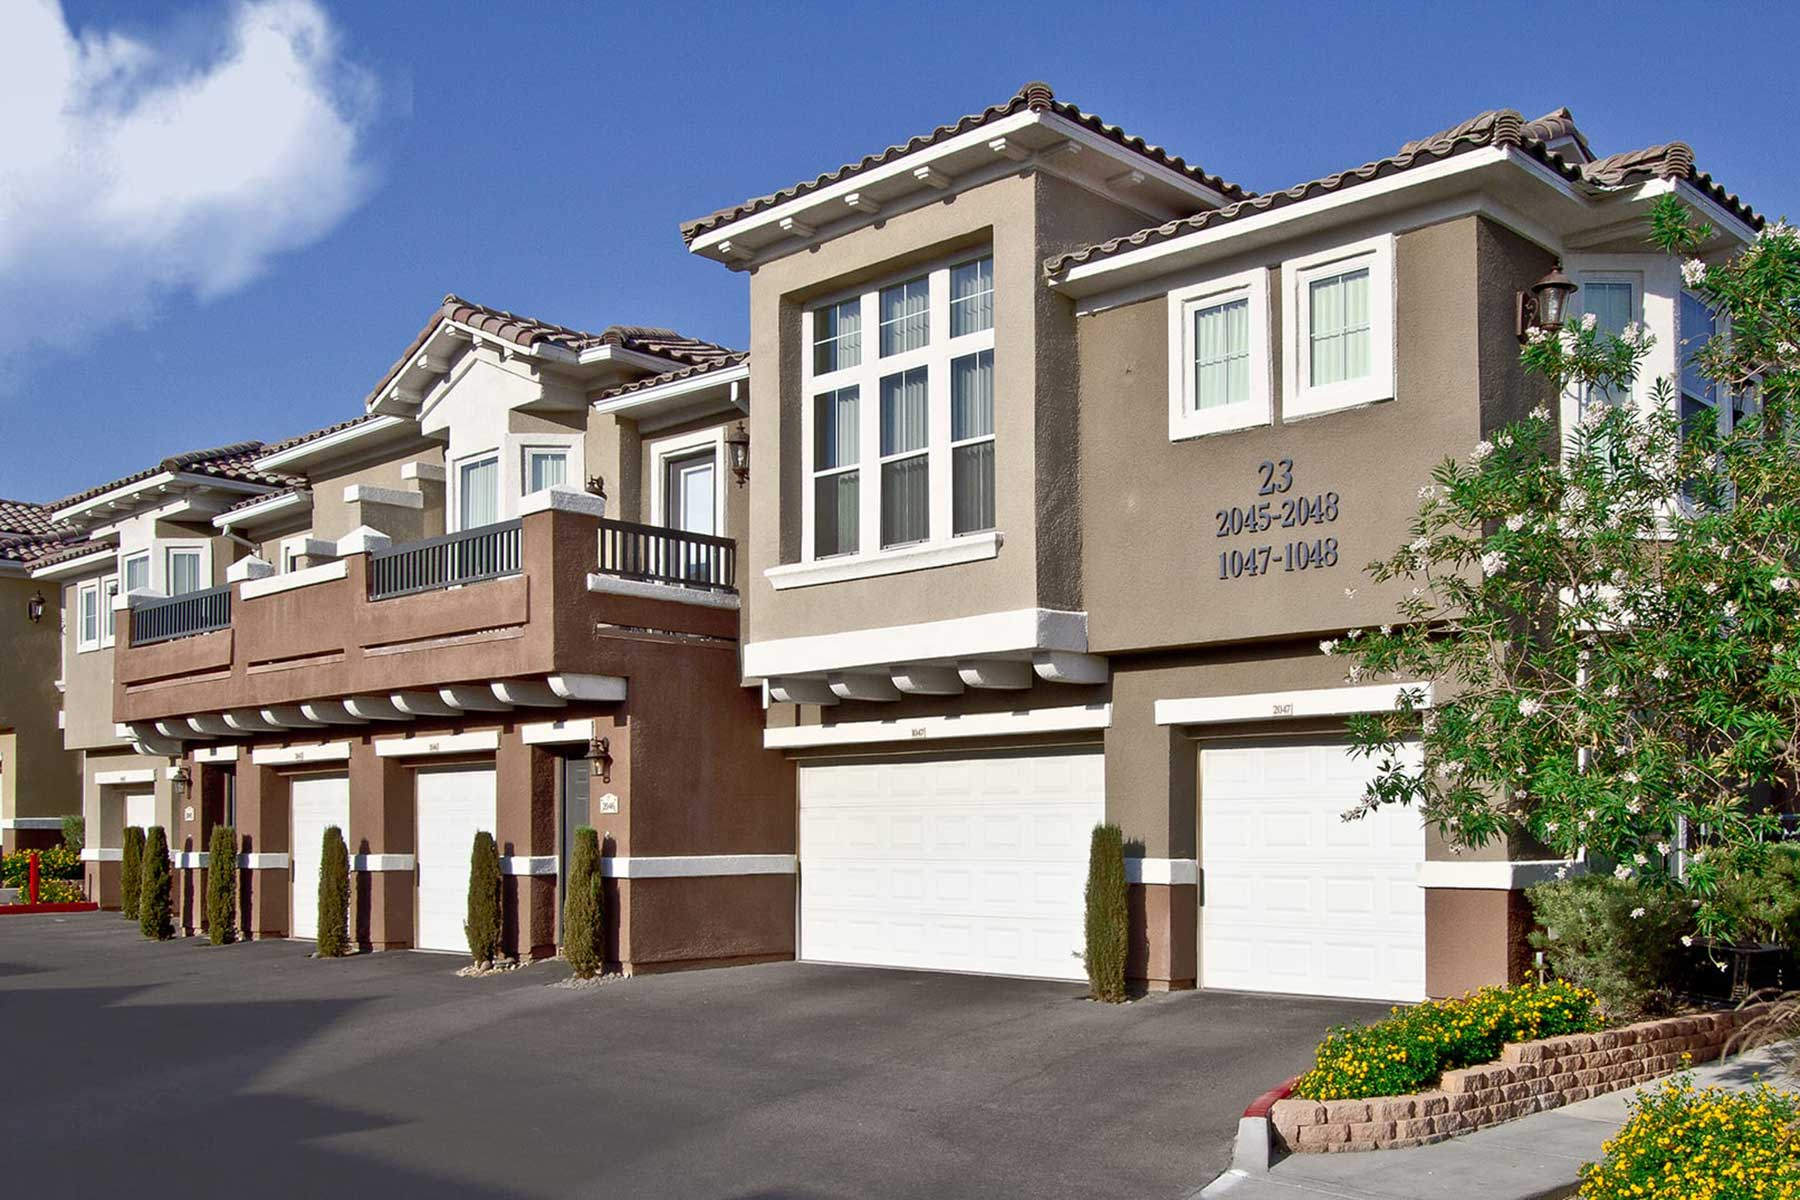 Venicia apartment homes sit atop garages with a wide driveway.